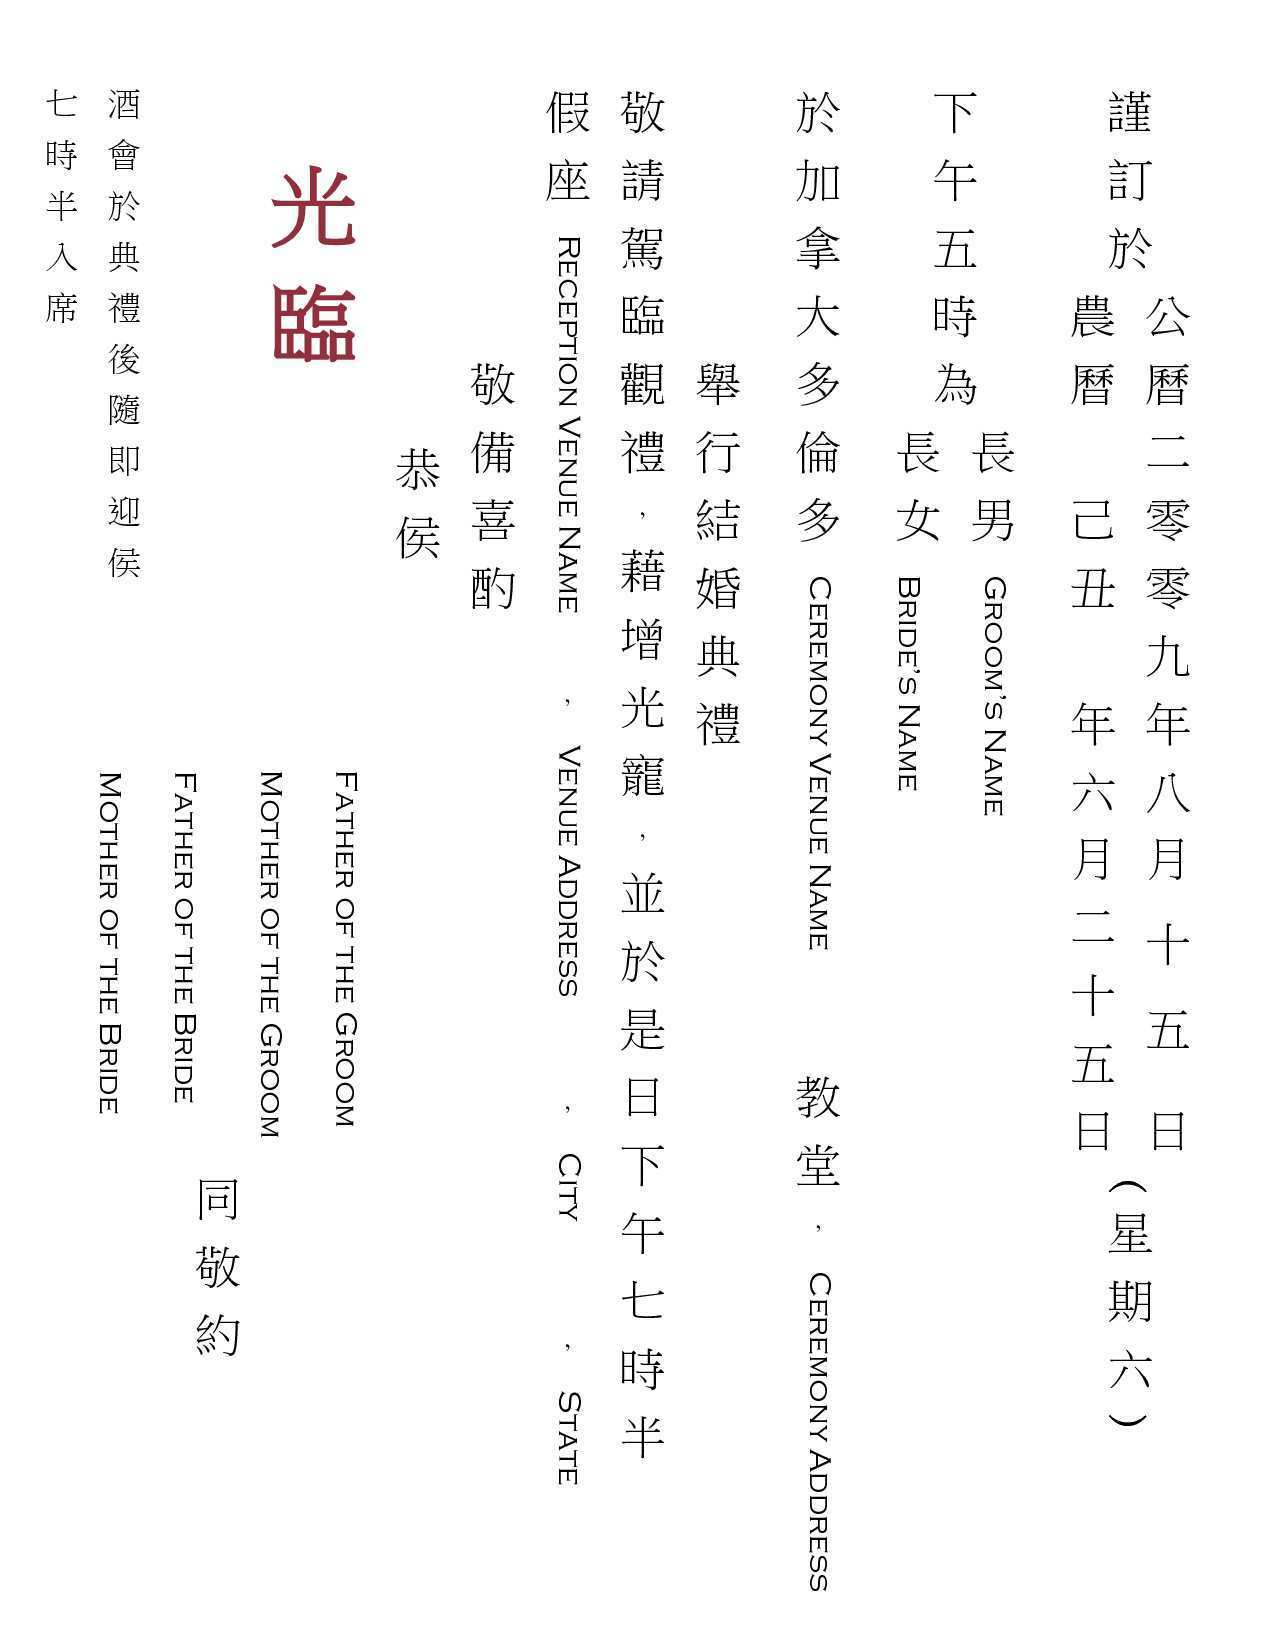 18 Customize Chinese Wedding Card Templates Free Download in Word for Chinese Wedding Card Templates Free Download